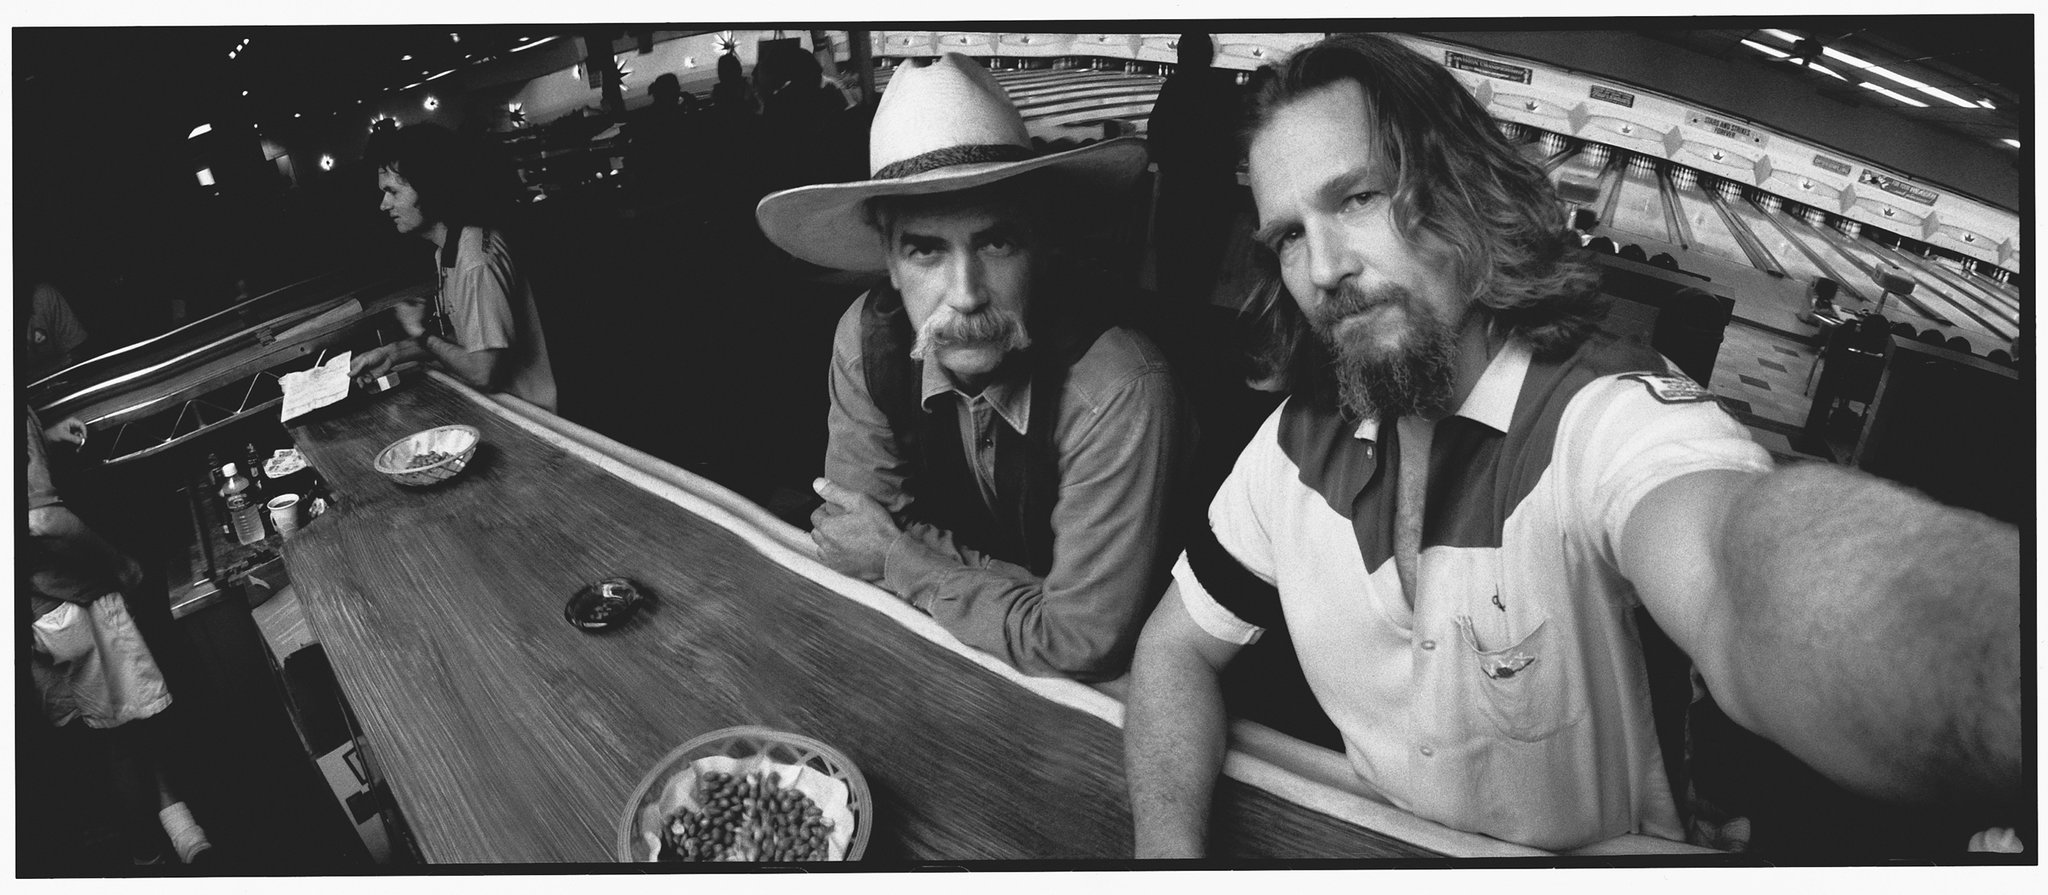 Jeff Bridges Wide-Lux self portrait with Sam Elliott during filming of  The Big Lebowski  (1998).